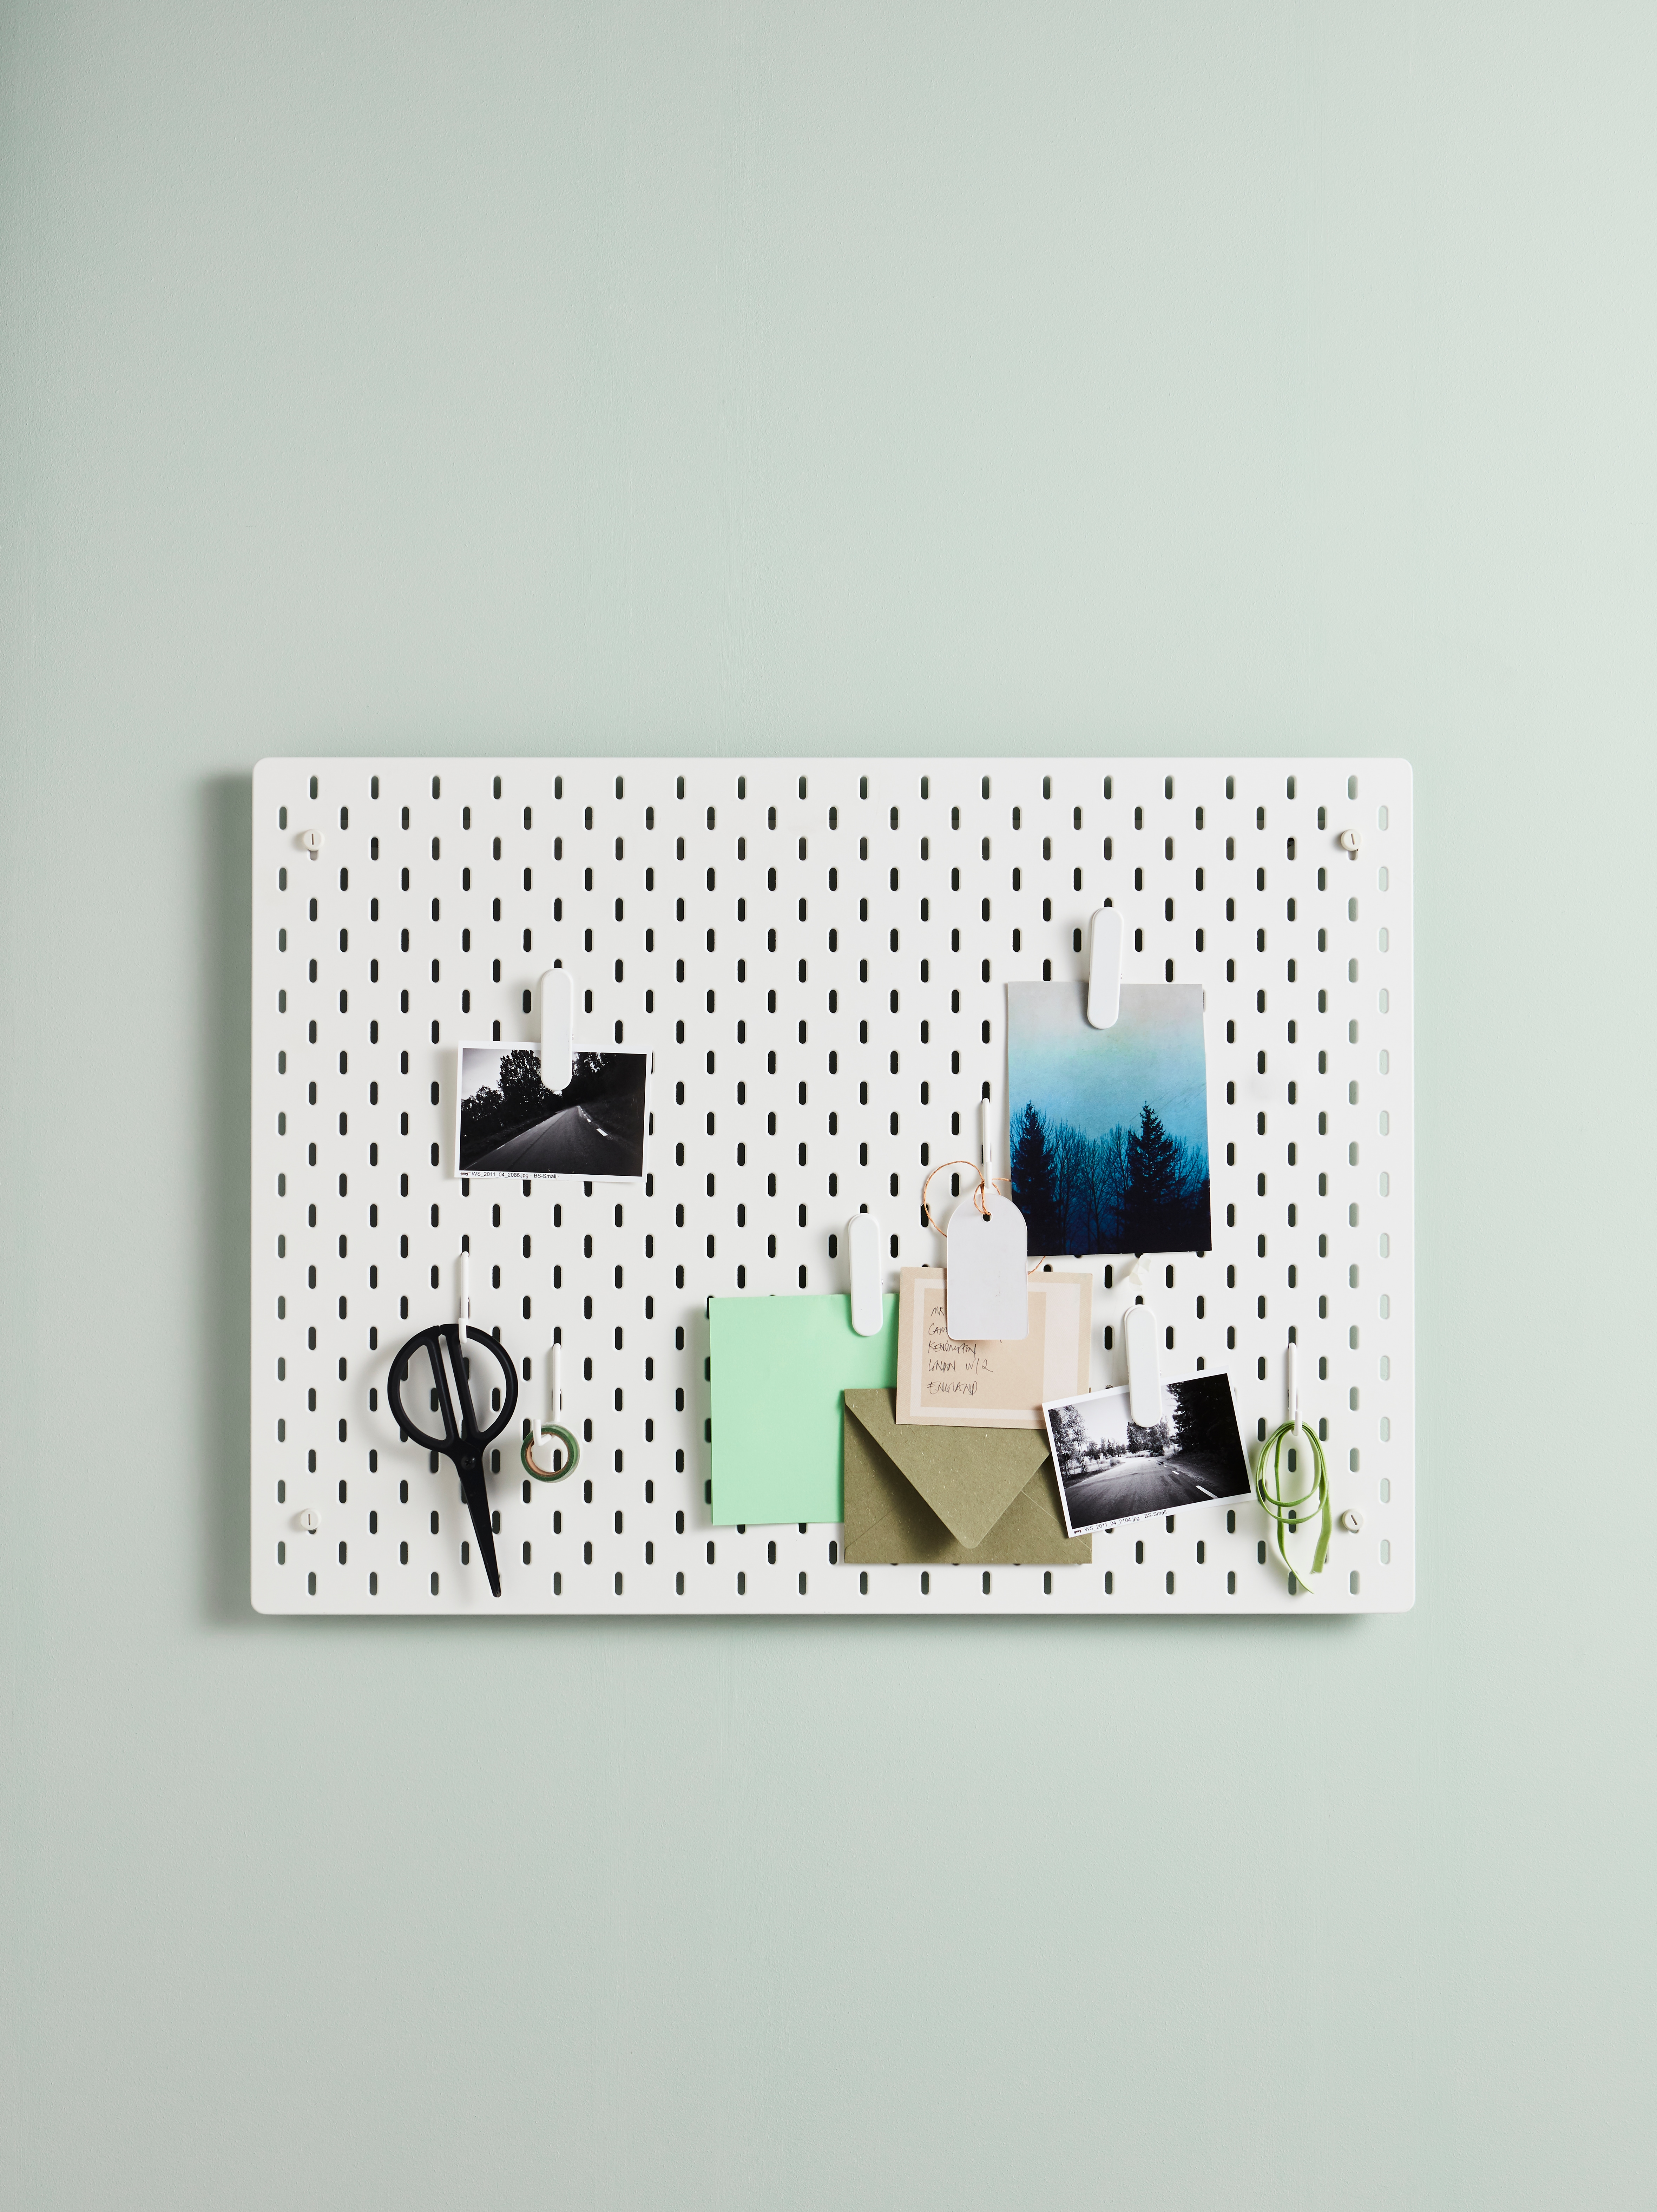 A white SKÅDIS pegboard is on a light green wall. Clips and hooks on the pegboard hold scissors, photos and envelopes.